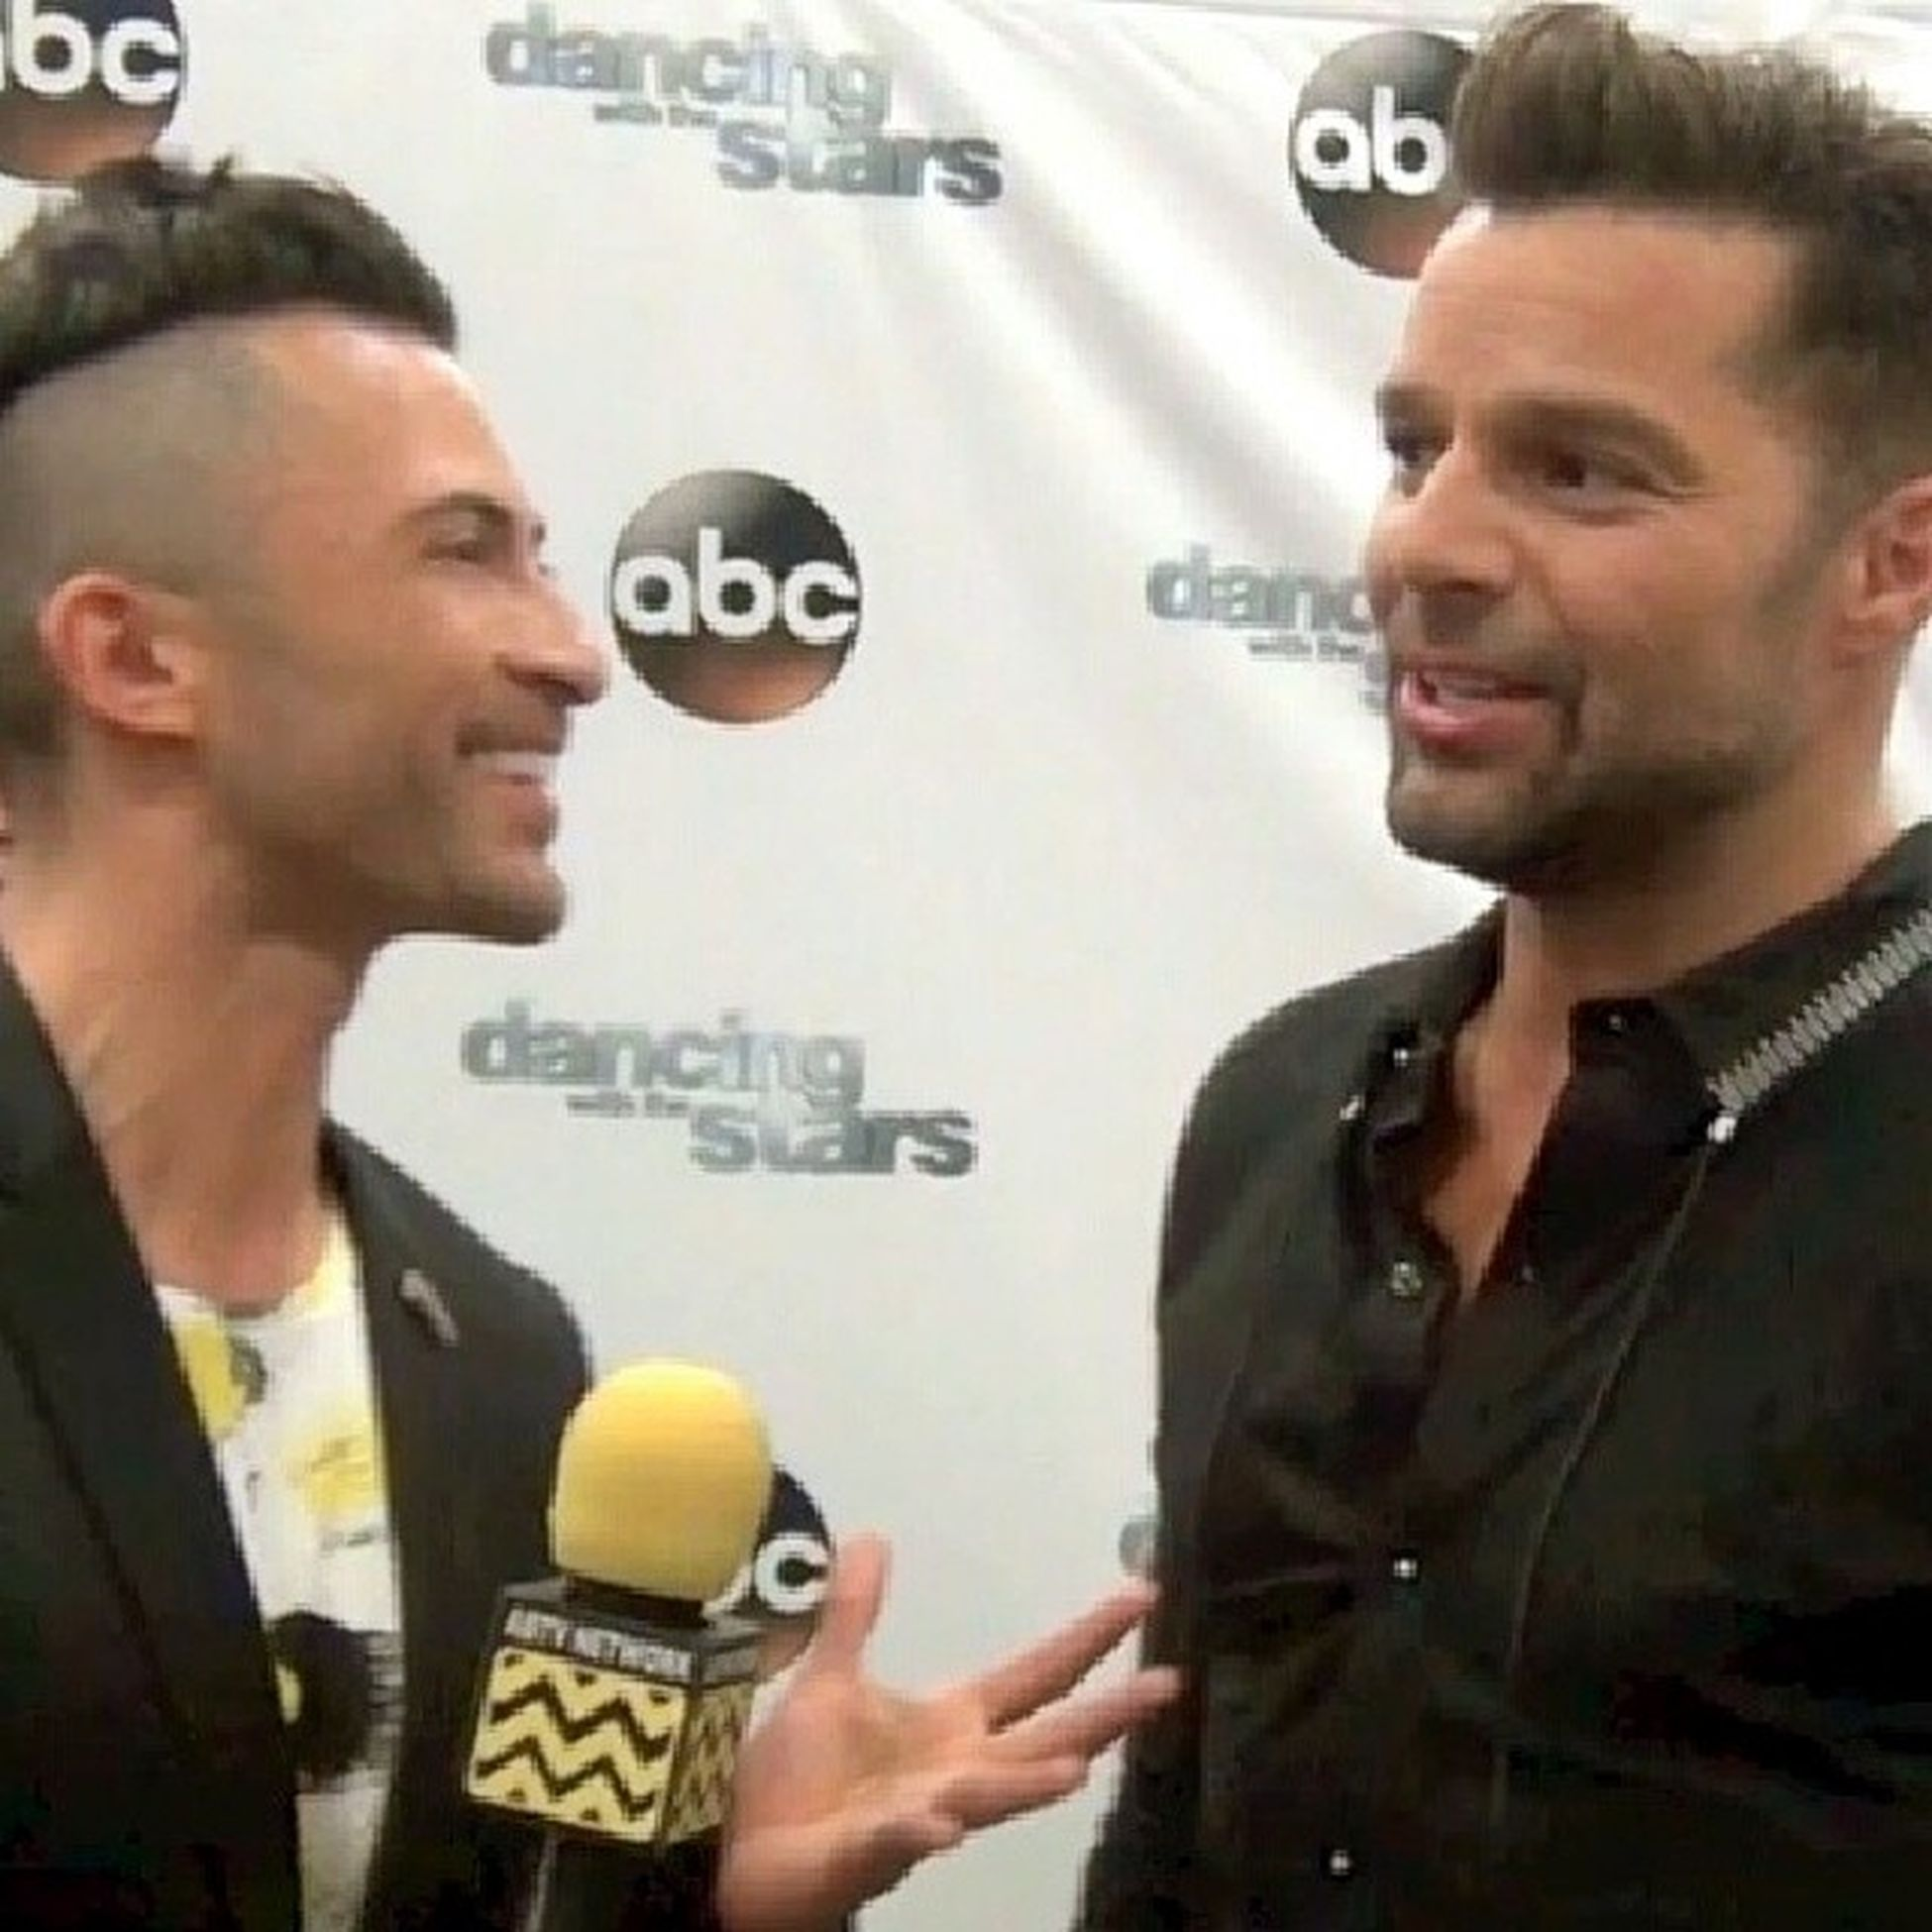 A true performer and pleasure to talk with Ricky Martin. RickyMartinAroundTheWorld Afterbuzztv BuzzYaLater Love RickyMartin me worldcup fifa mundial espanol spanglish photooftheday like picoftheday merijuan beautiful instadaily happy bestoftheday fun smile MerikaRock fashion webstagram friends dancingwiththestars dwts dance nofilter